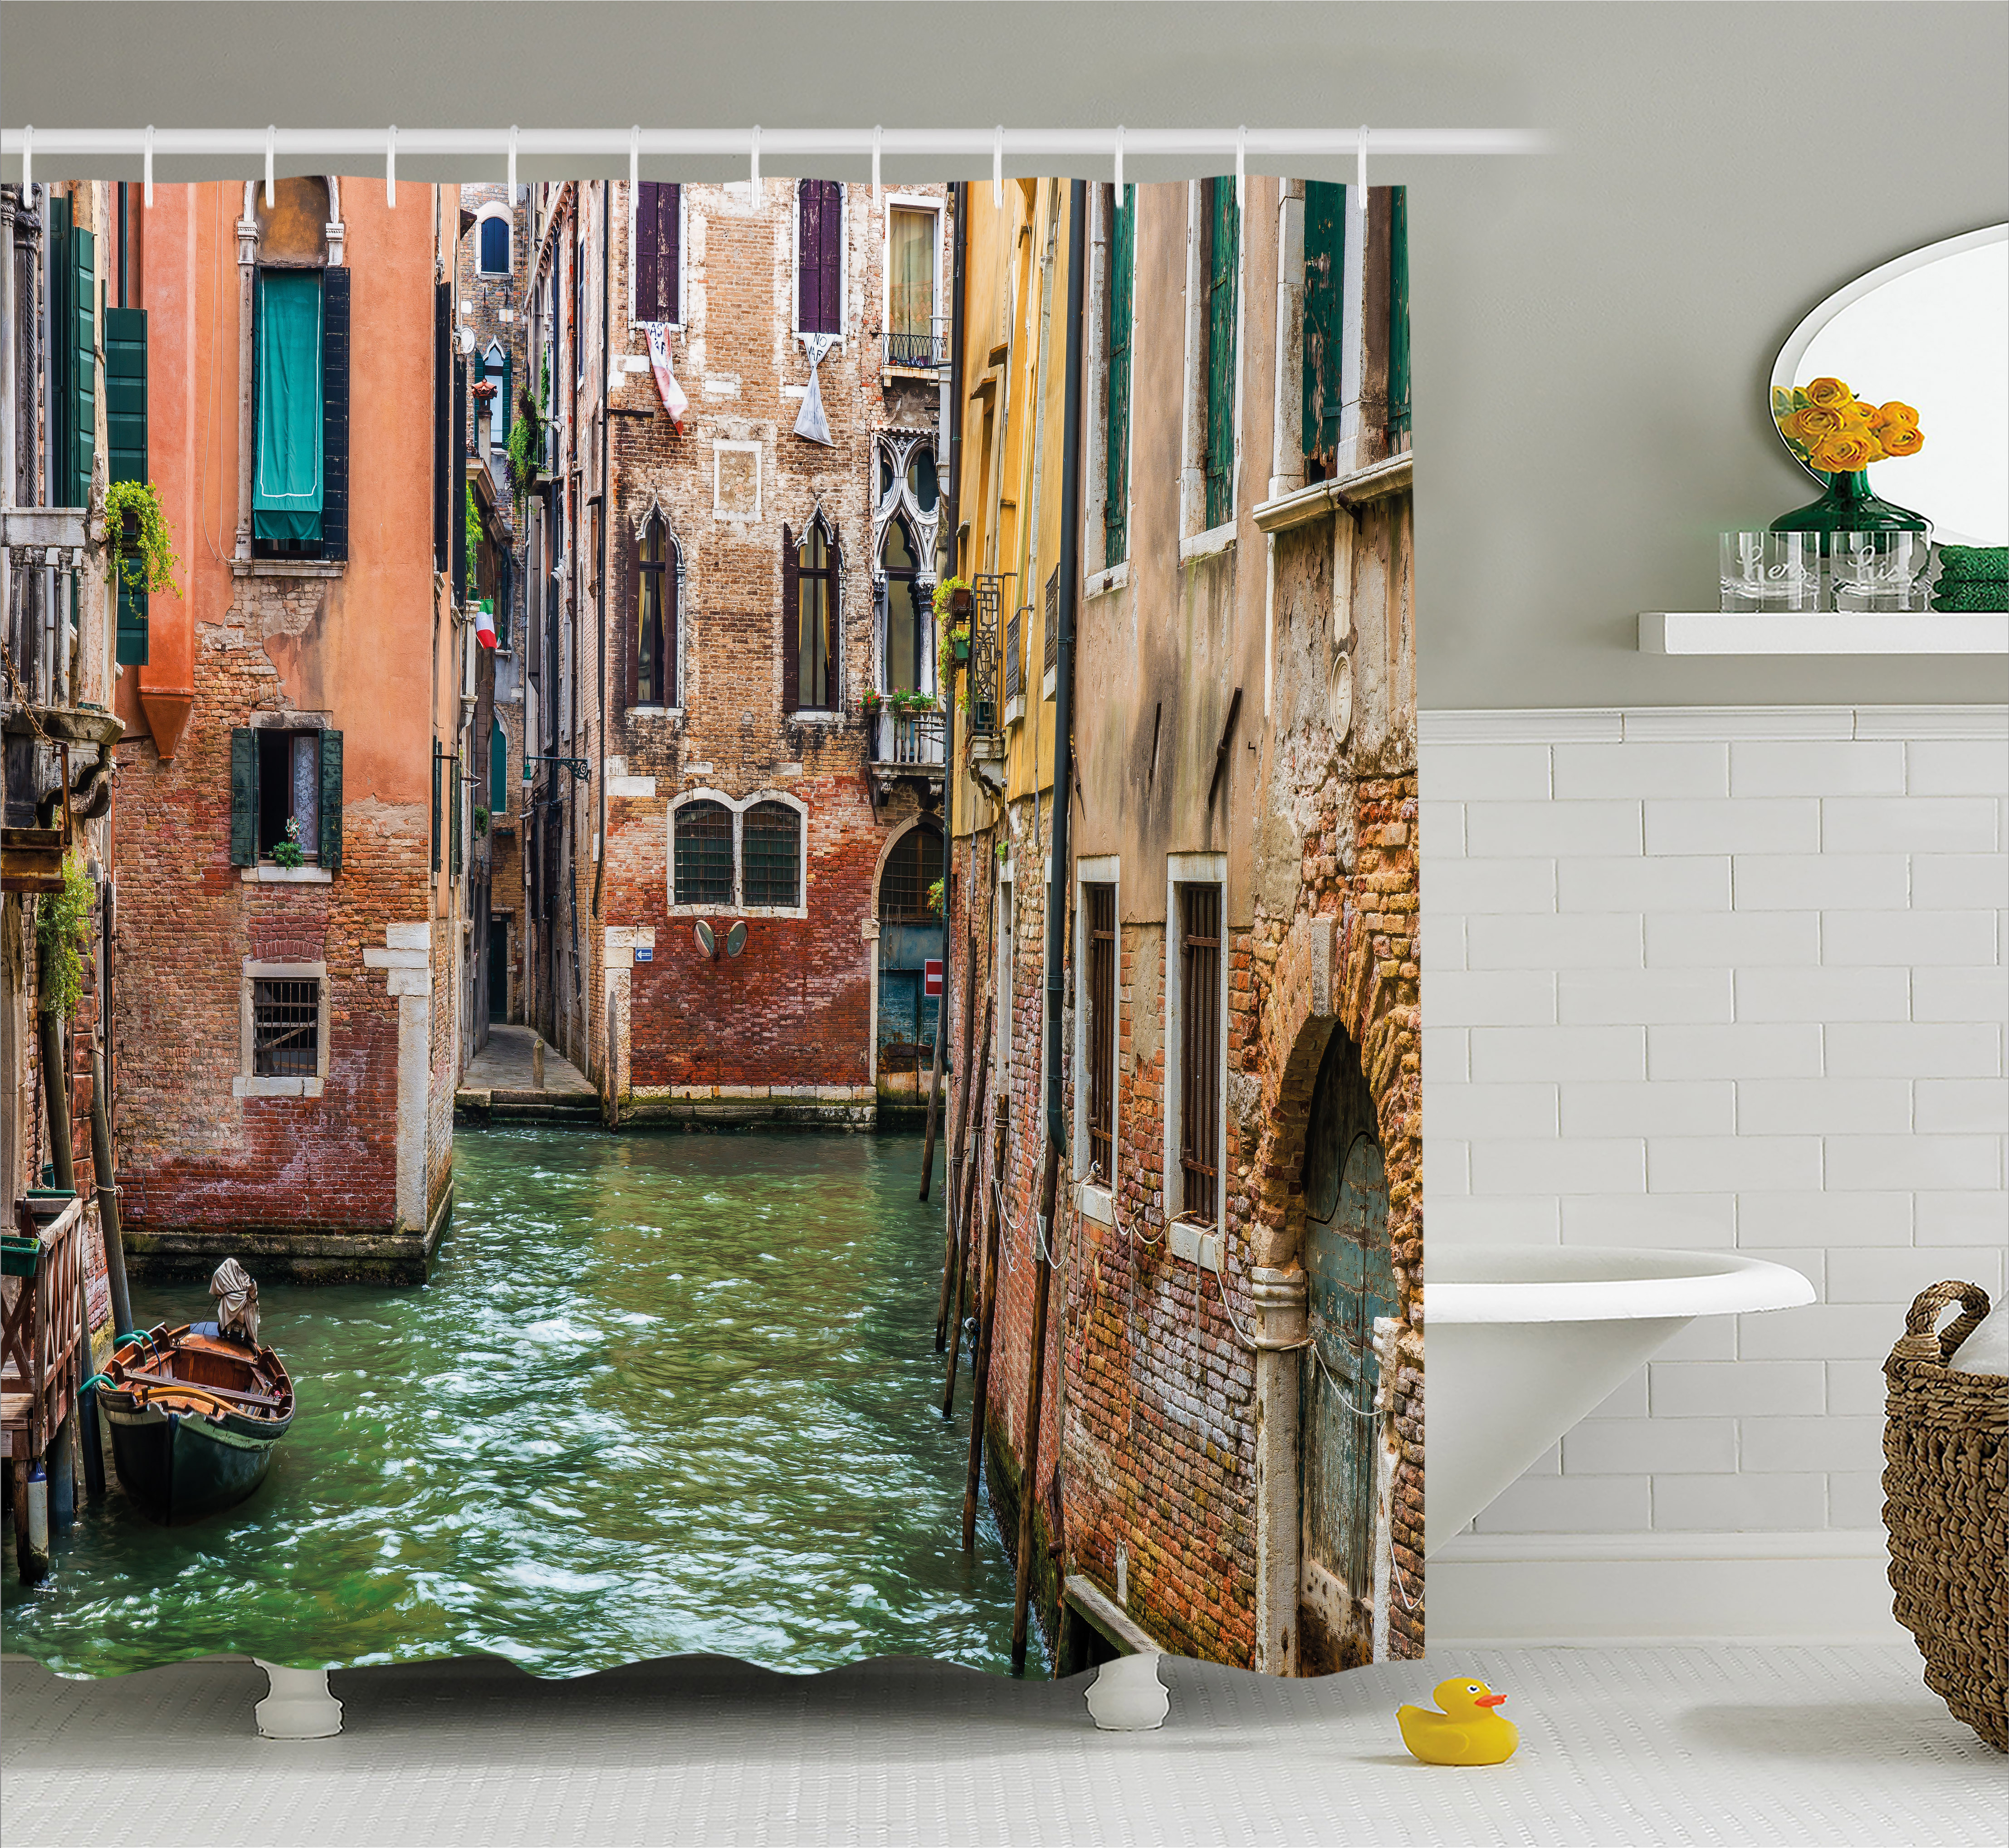 Venice Shower Curtain, Italian City on Water Historical Landmark Famous Streets Houses Gondolas Europe, Fabric Bathroom Set with Hooks, 69W X 75L Inches Long, Multicolor, by Ambesonne